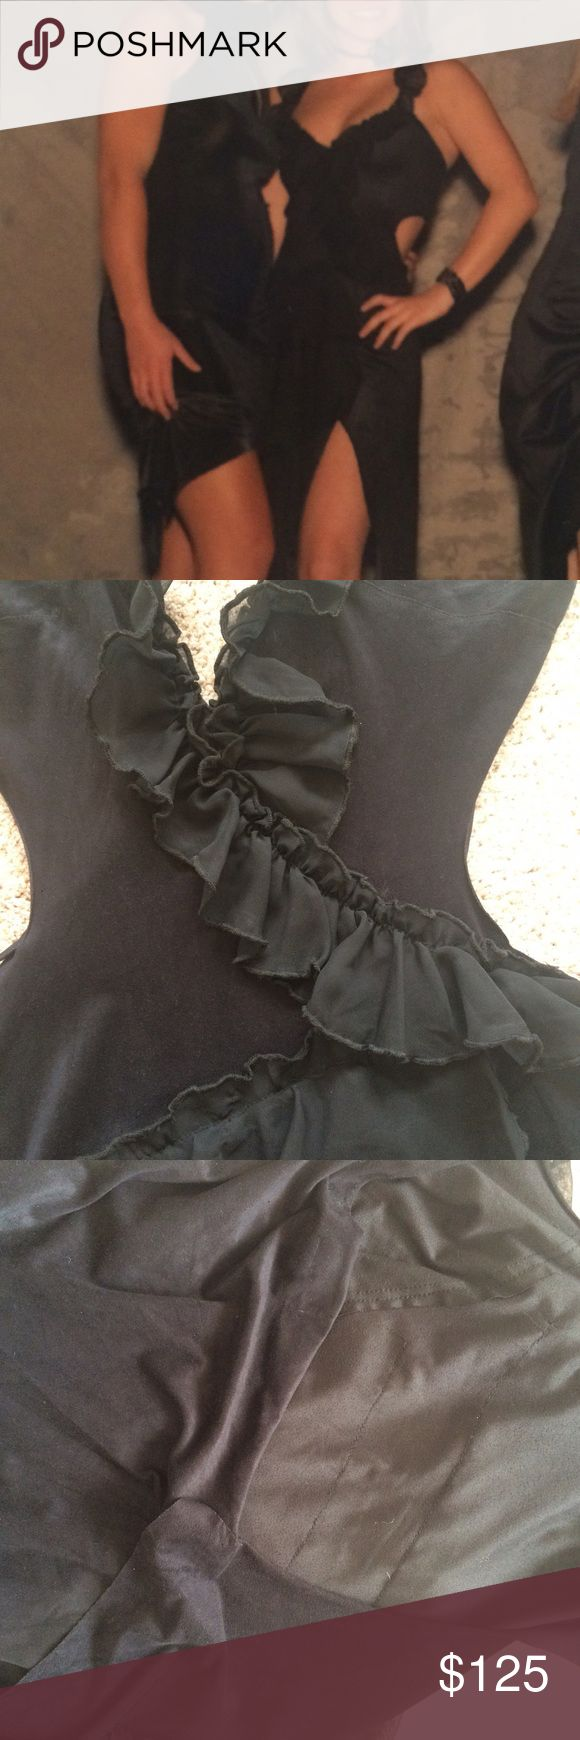 Asymmetrical Black Suede Ruffle Dress UNIQUE AND SEXY asymmetrical suede and ruffle dress. Size is large but I'm a small and took a brooch and pinned the back when I wore it. Open back, slit from the floor to the top of left thigh. Ruffles make this dress so feminine and sexy. Got sooooo many compliments on it. last photo is picture of the open back. Kosiuko Dresses Asymmetrical